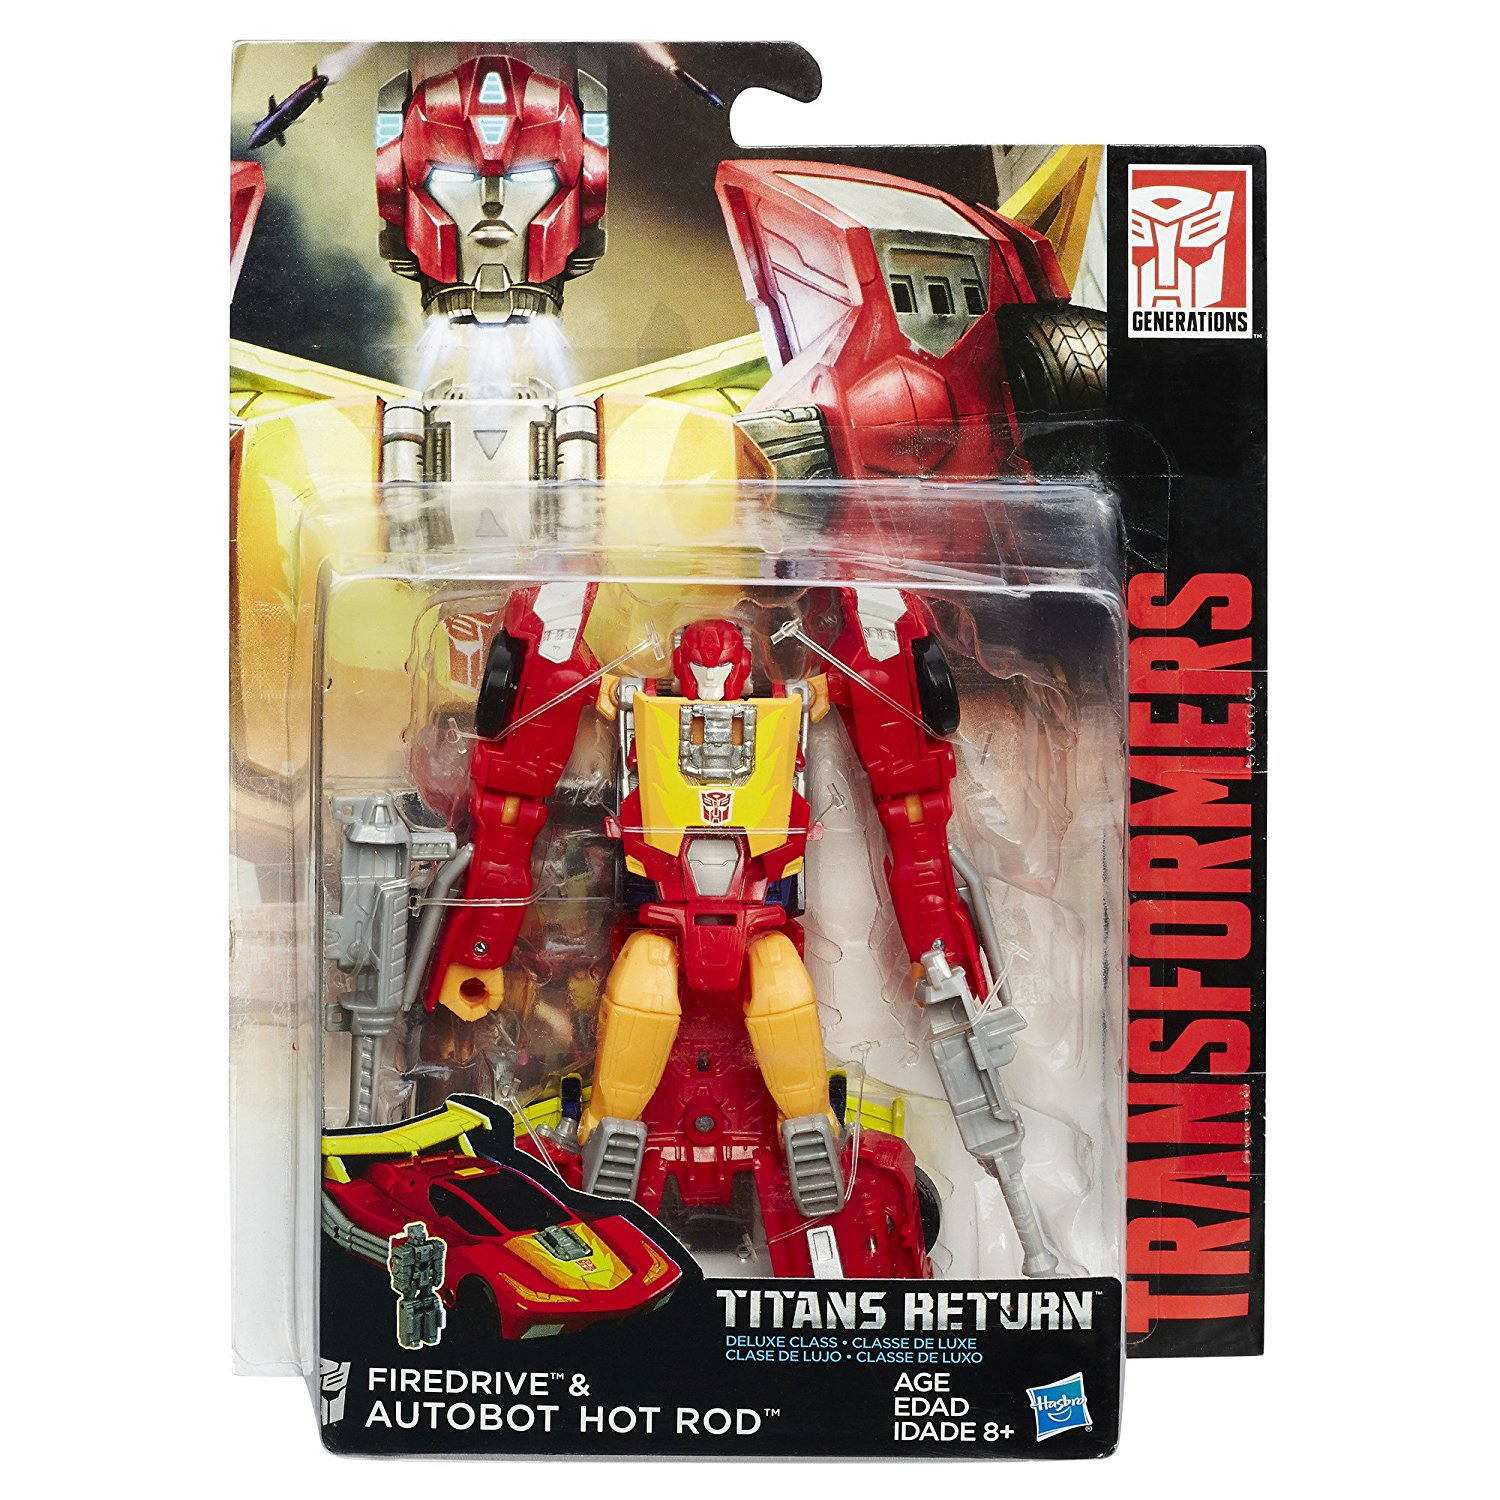 Transformers Titans Return Hot Rod And Firedrive Figures For $9.99 On Amazon